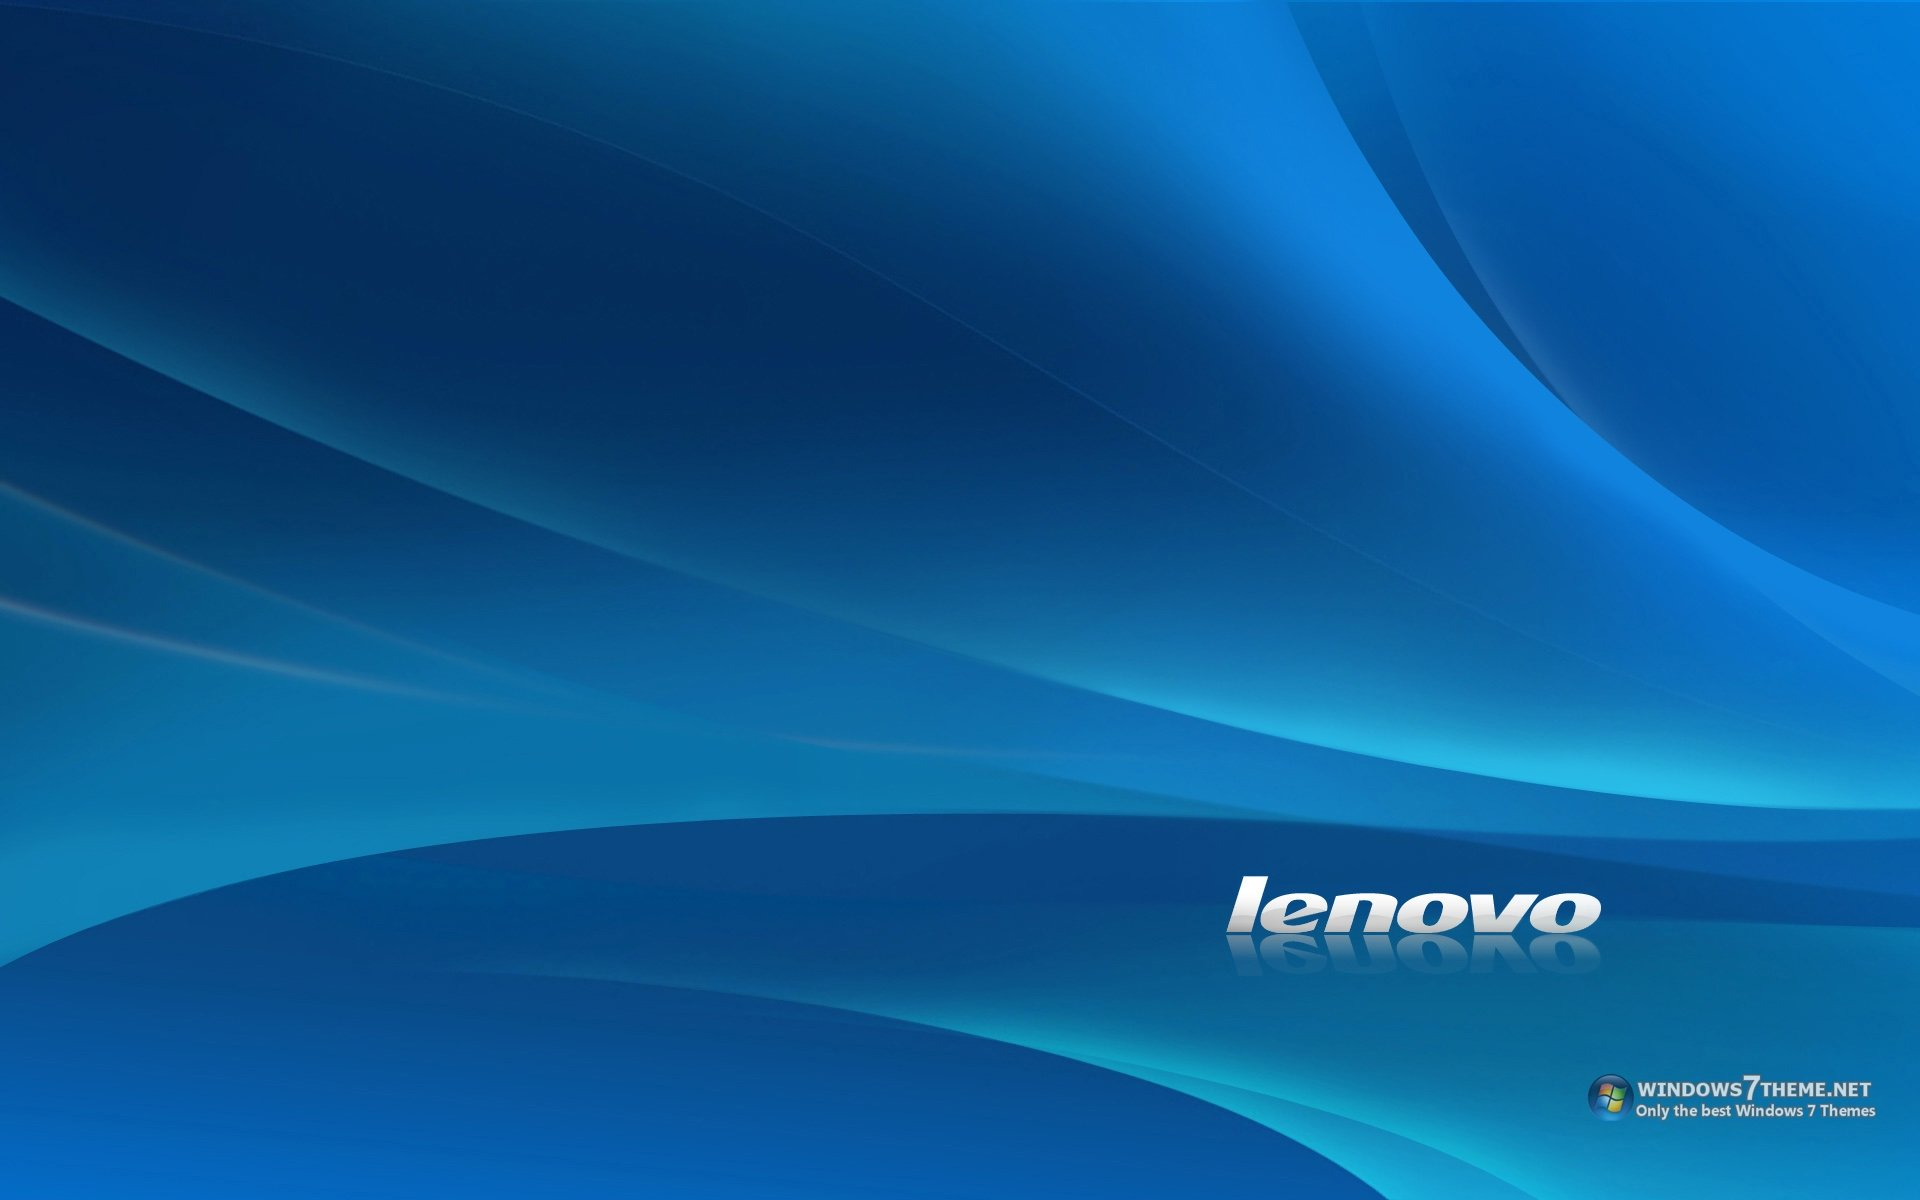 Lenovo Wallpaper Collection in HD for Download 1920x1200